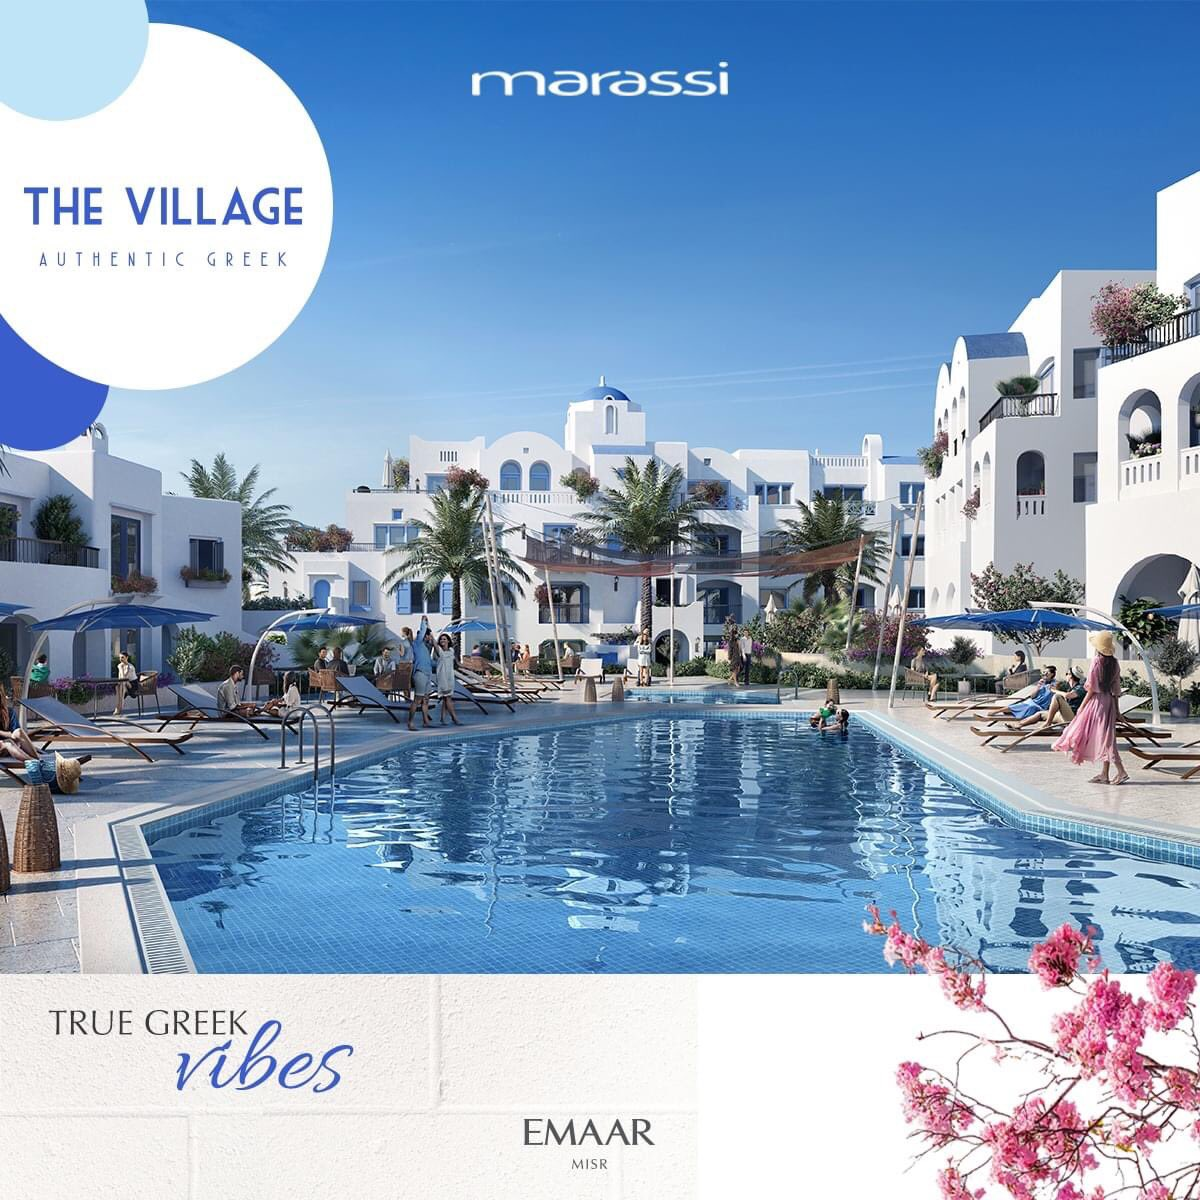 Walk care-free through charming alleyways and experience true Greek vibes at The Village.  Book your home now and enjoy complimentary air conditioners for a limited time only! #Emaar #EmaarMisr #Marassi #TheVillage https://t.co/iq93LIMYpR